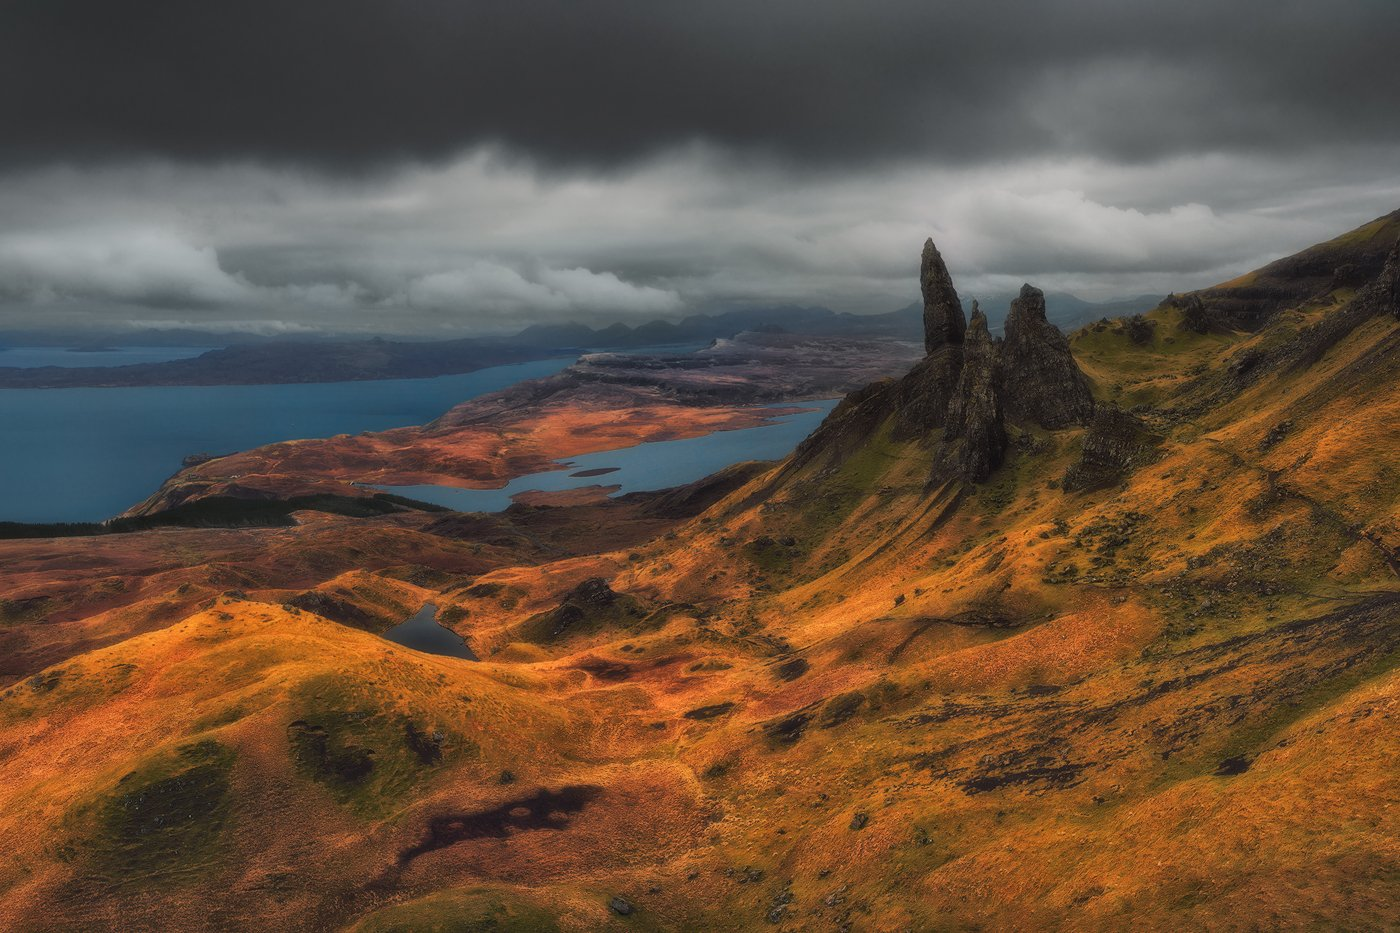 scotland, isle_of_skye, skye, travel, nd, long_exposure, nikon, uk, landscape, fine_art, highlands, heliopan, manfrotto, filters, water, colors, rgb, hills, mountains,, Hubert Leszczynski